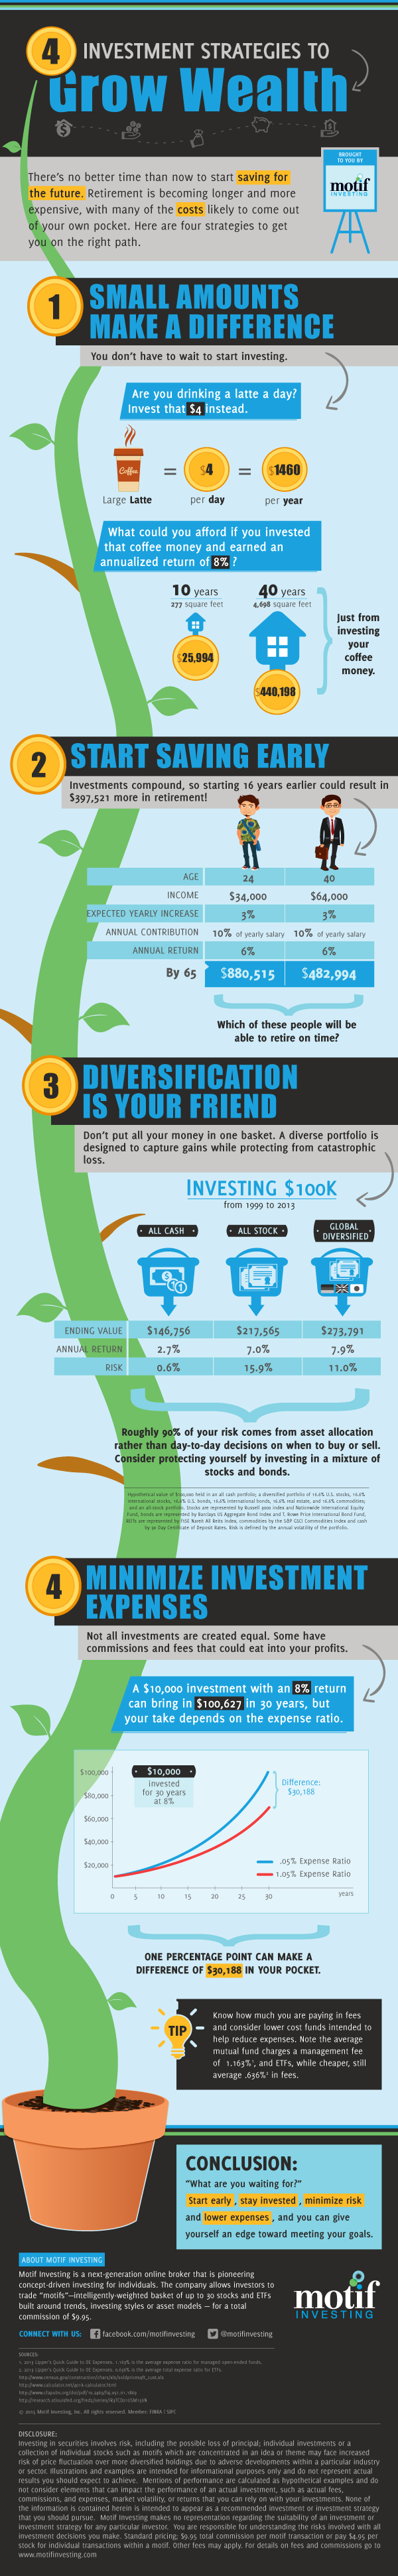 Infographic: Investing tips for Millennials